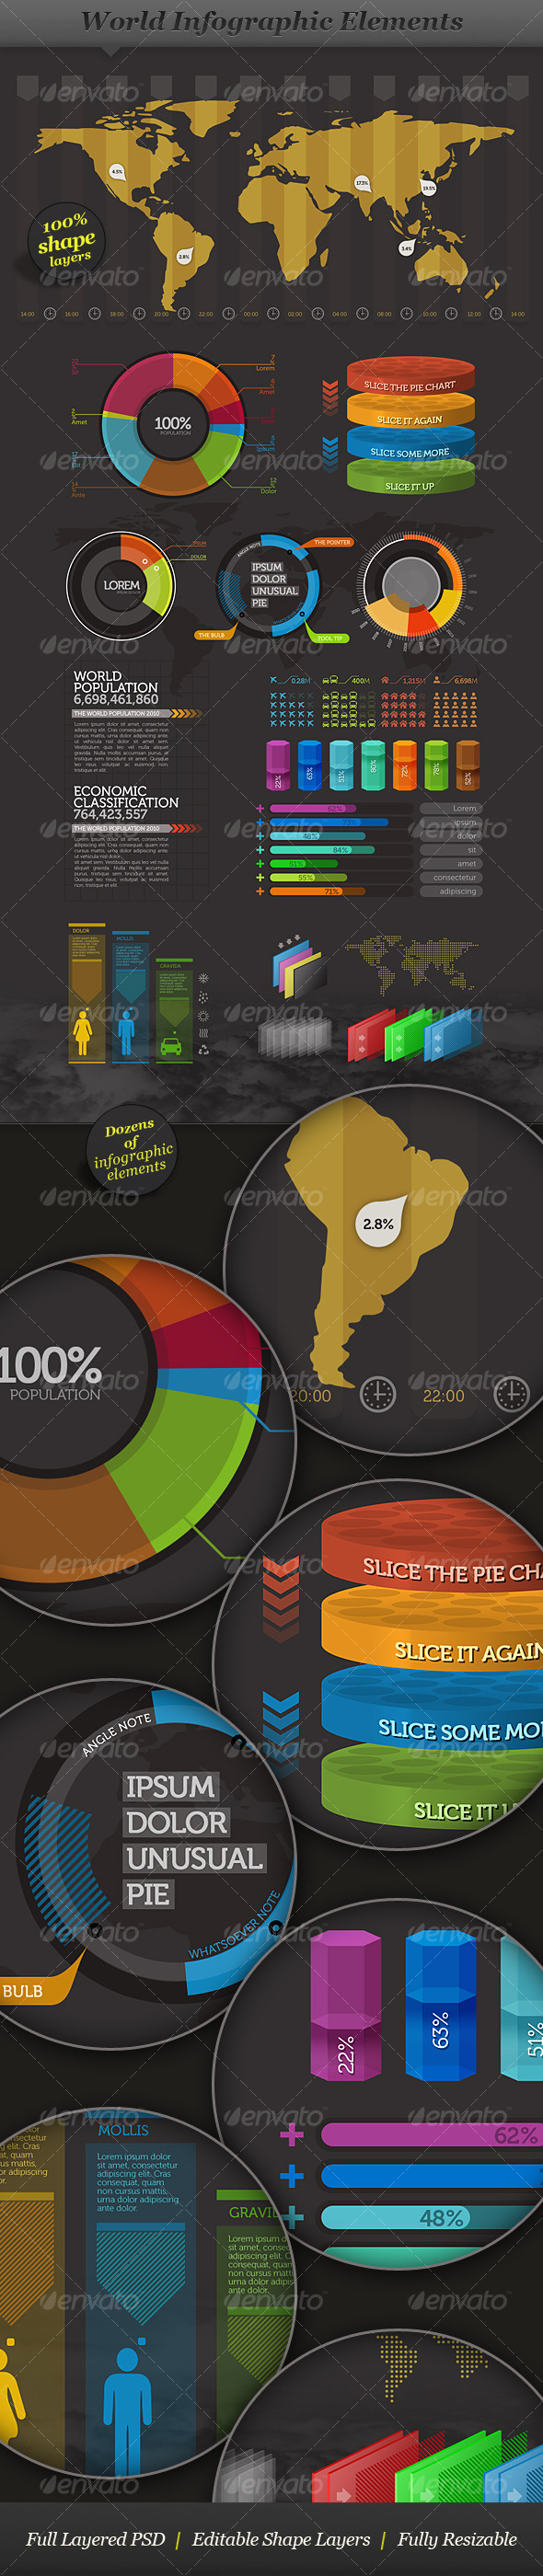 World - Infographic Elements - Visual Information - Infographics